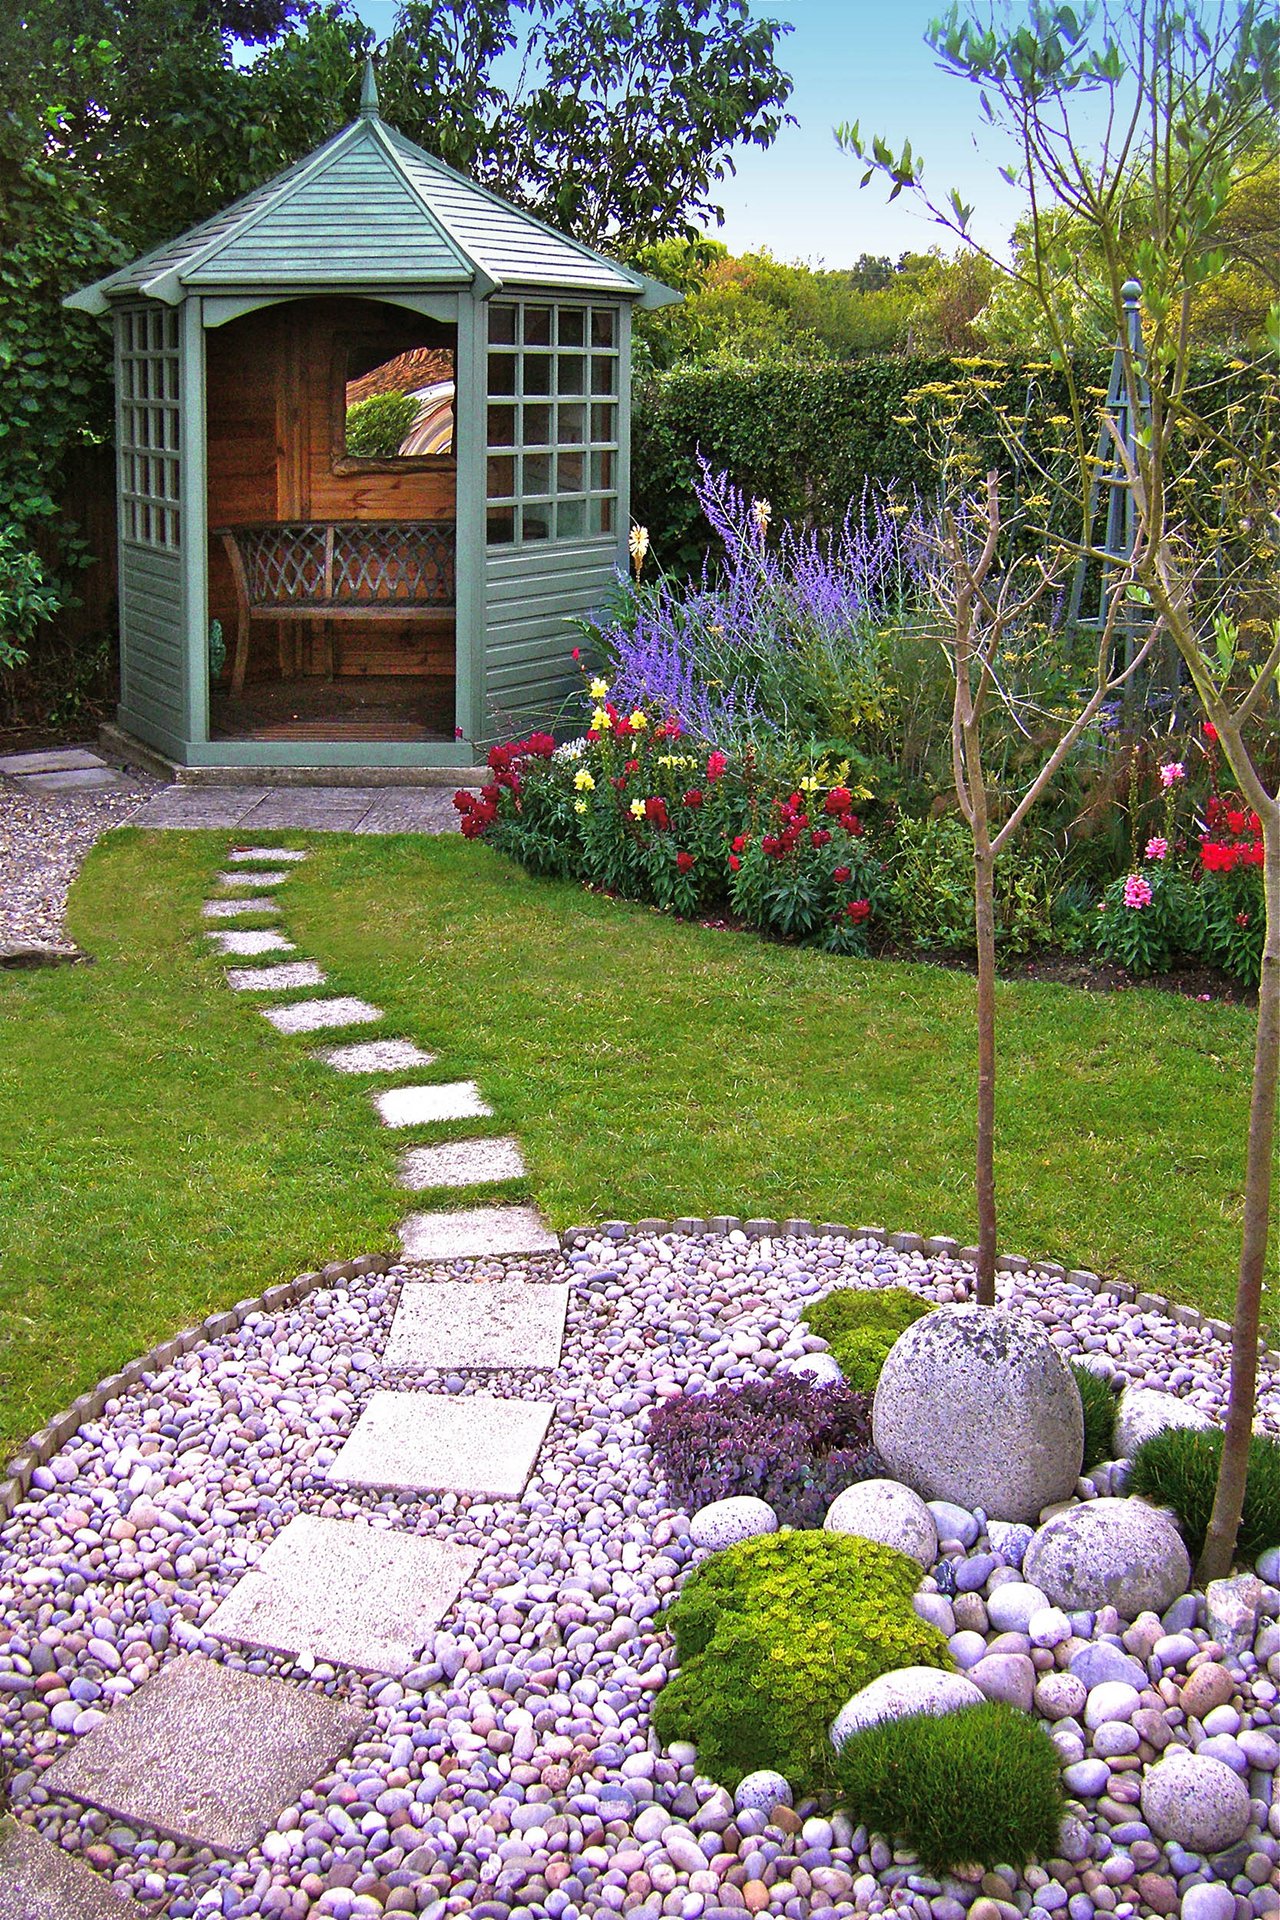 50 Best Backyard Landscaping Ideas And Designs In 2019 within Pictures Of Backyard Landscaping Ideas